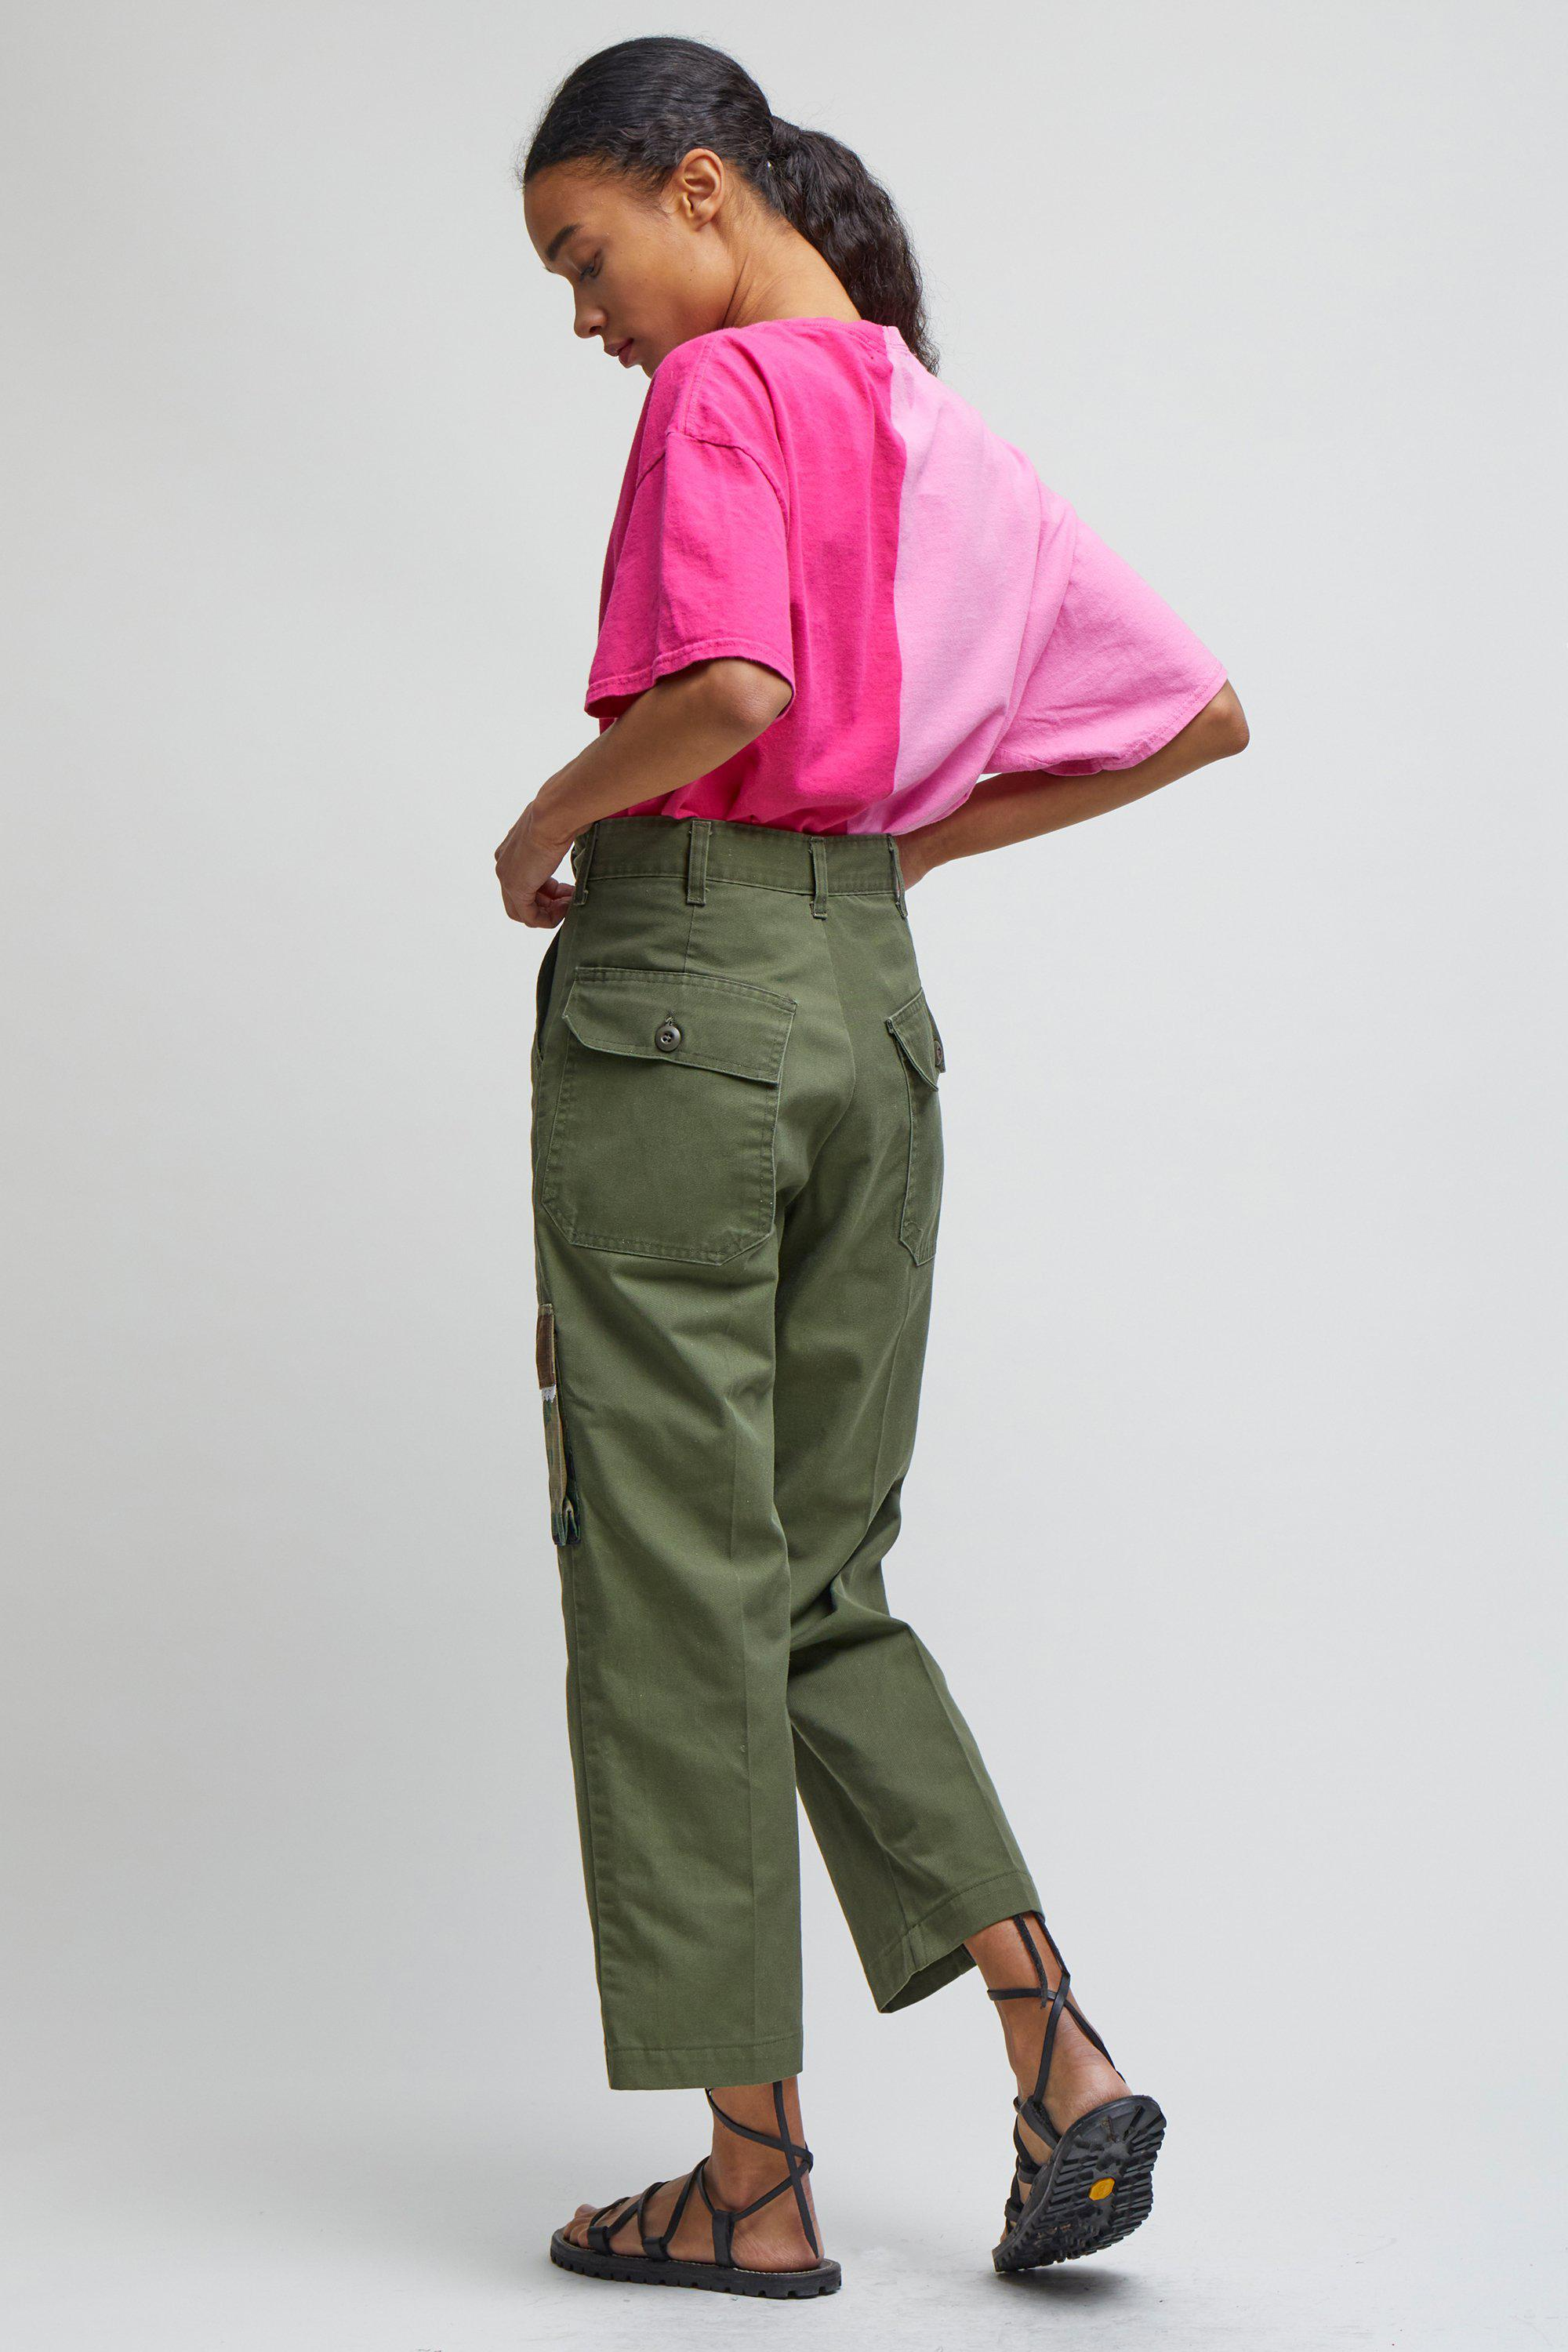 CROPPED CARGO TROUSERS - XS